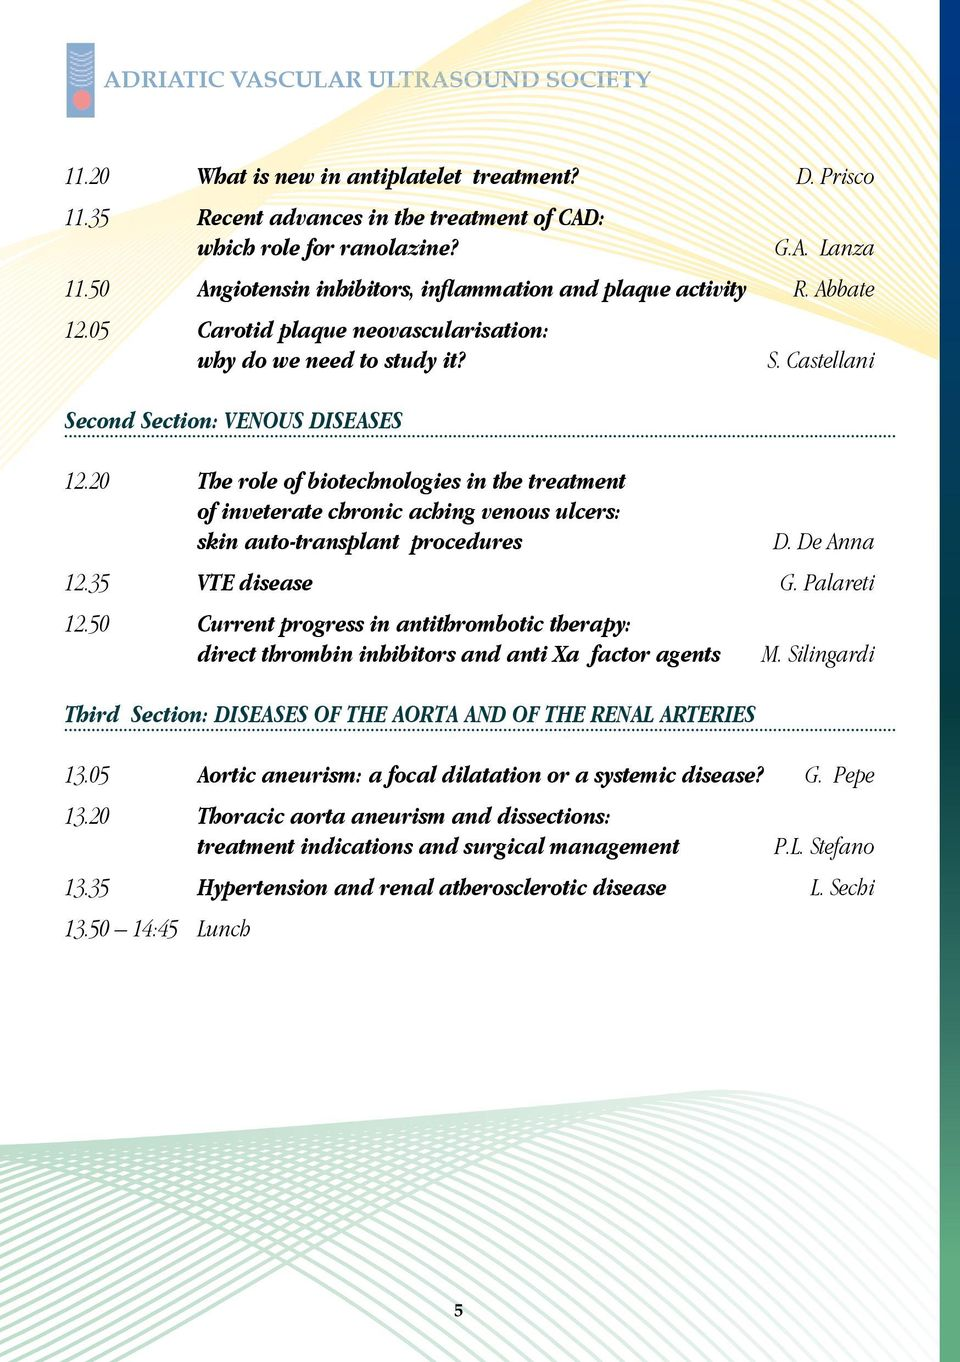 20 The role of biotechnologies in the treatment of inveterate chronic aching venous ulcers: skin auto-transplant procedures D. De Anna 12.35 VTE disease G. Palareti 12.